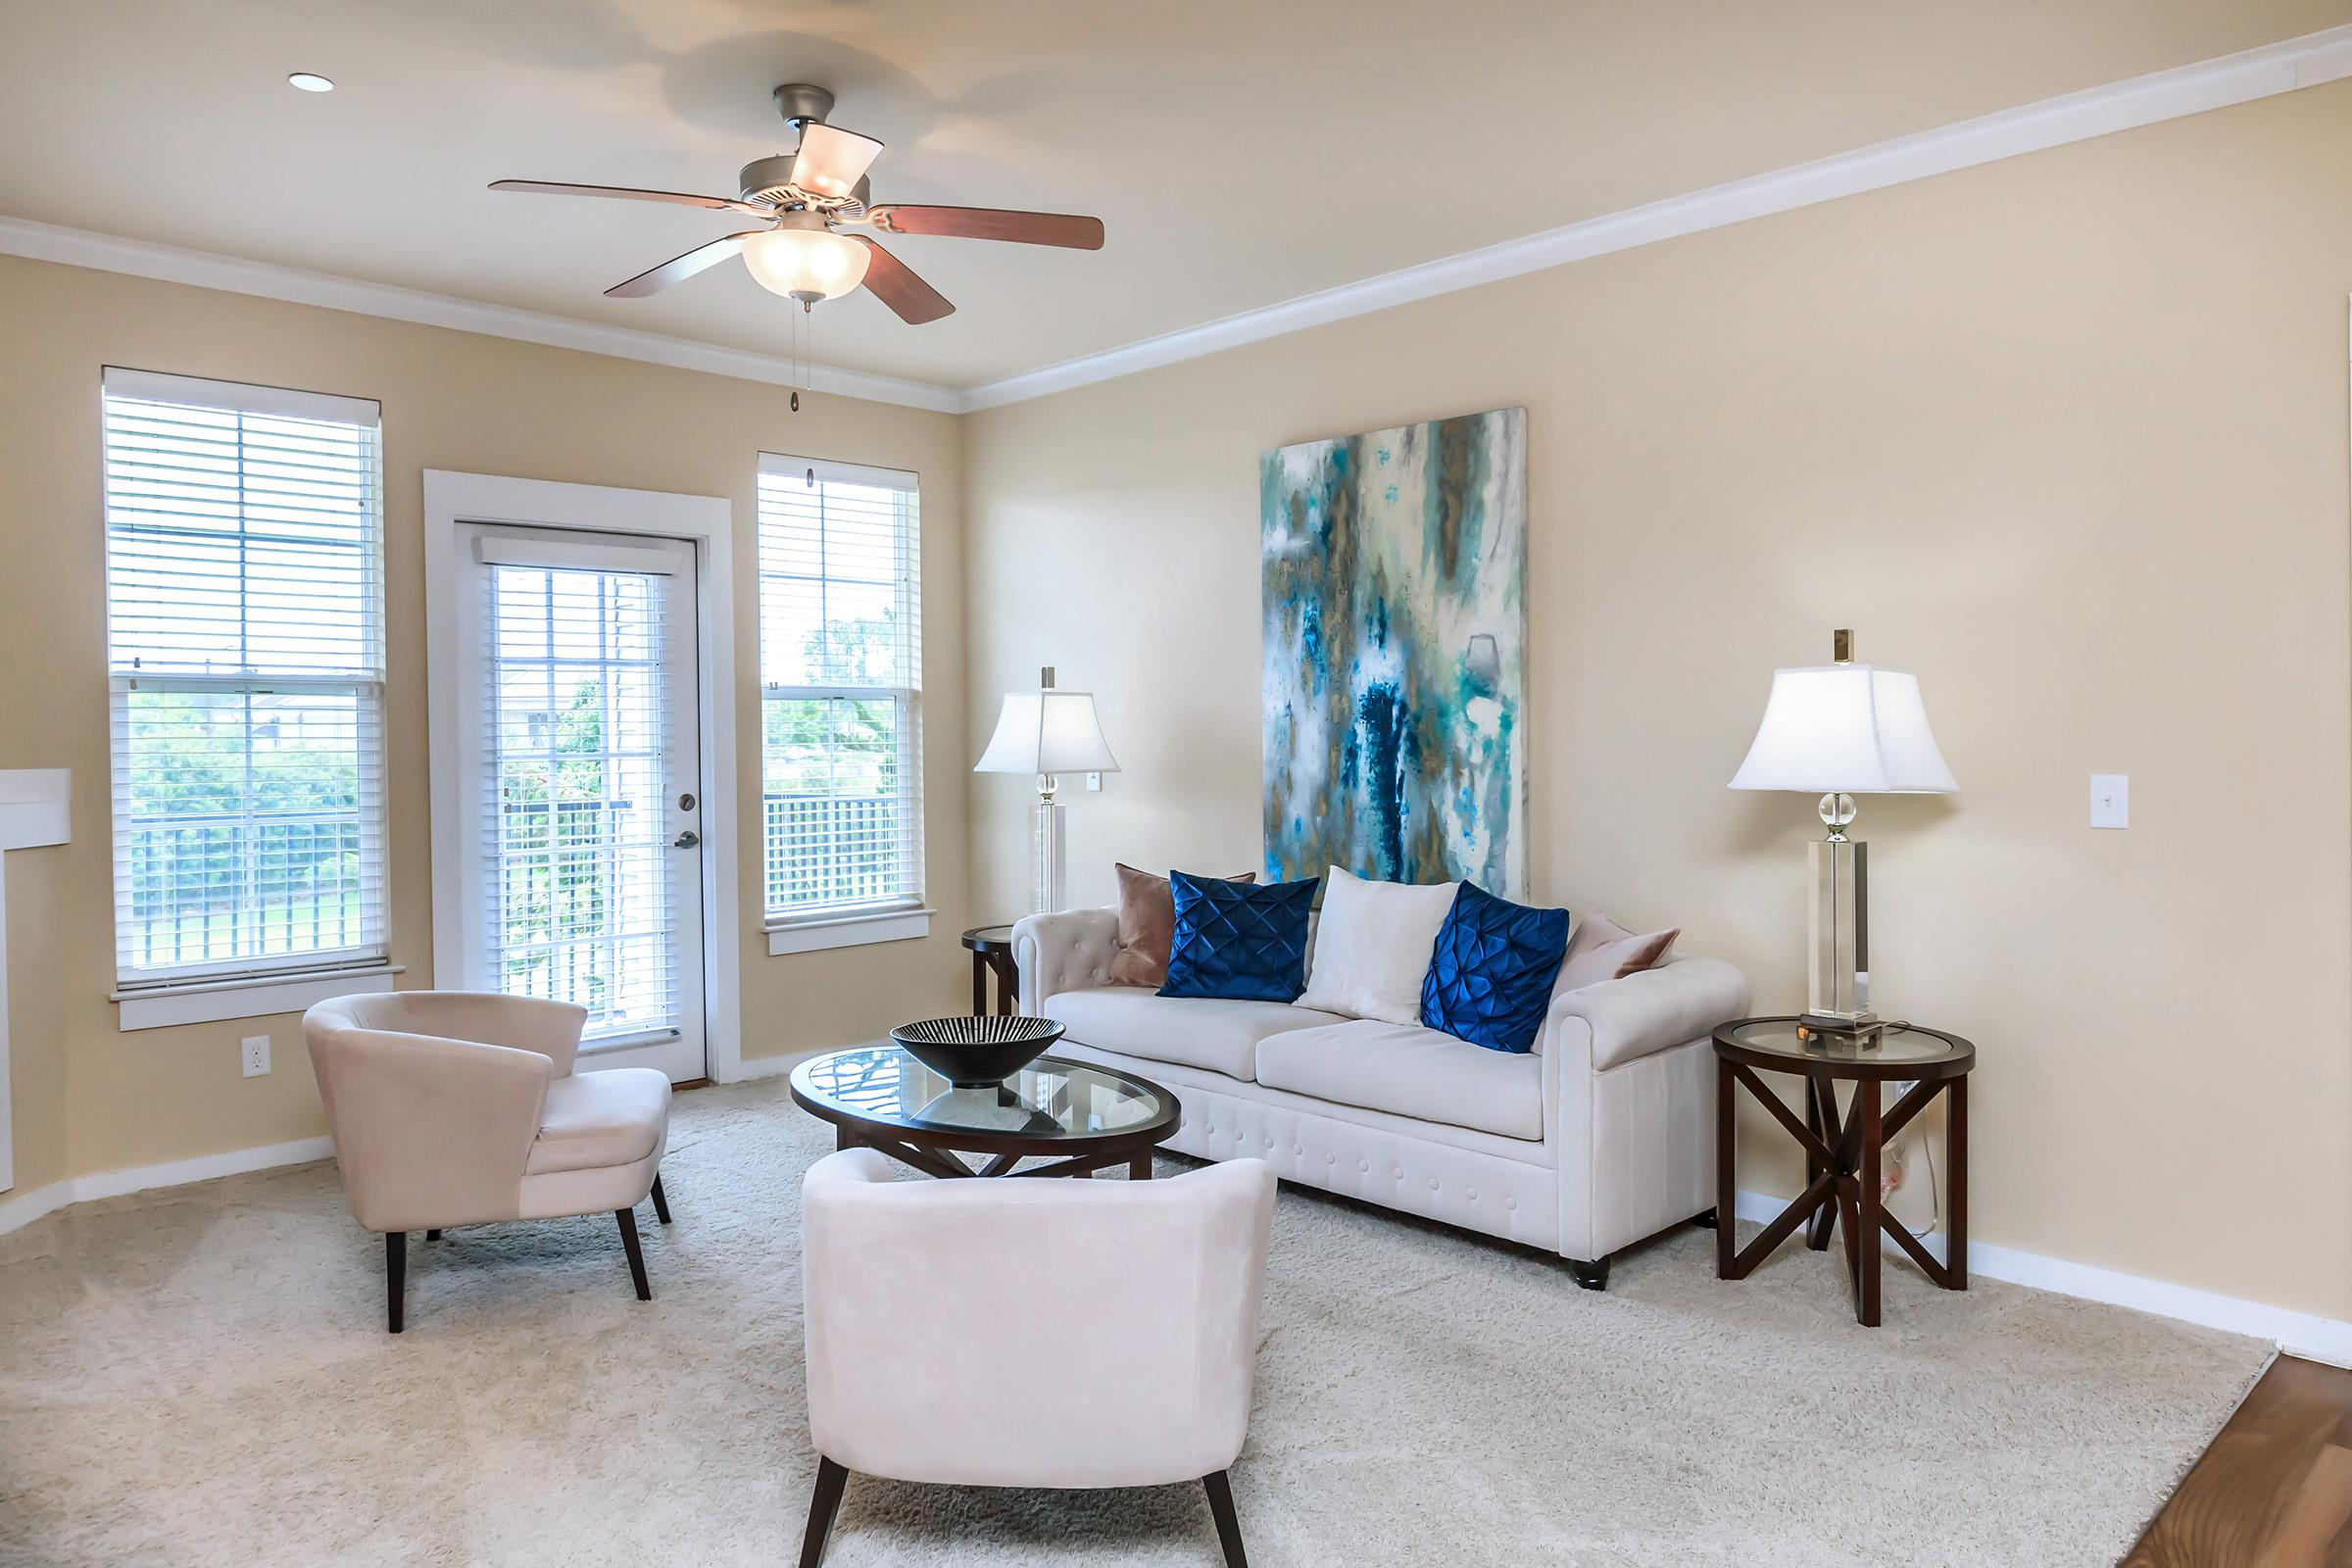 FURNISHED APARTMENT HOMES AVAILABLE AT ARBOR LANDING ON THE RIVER.